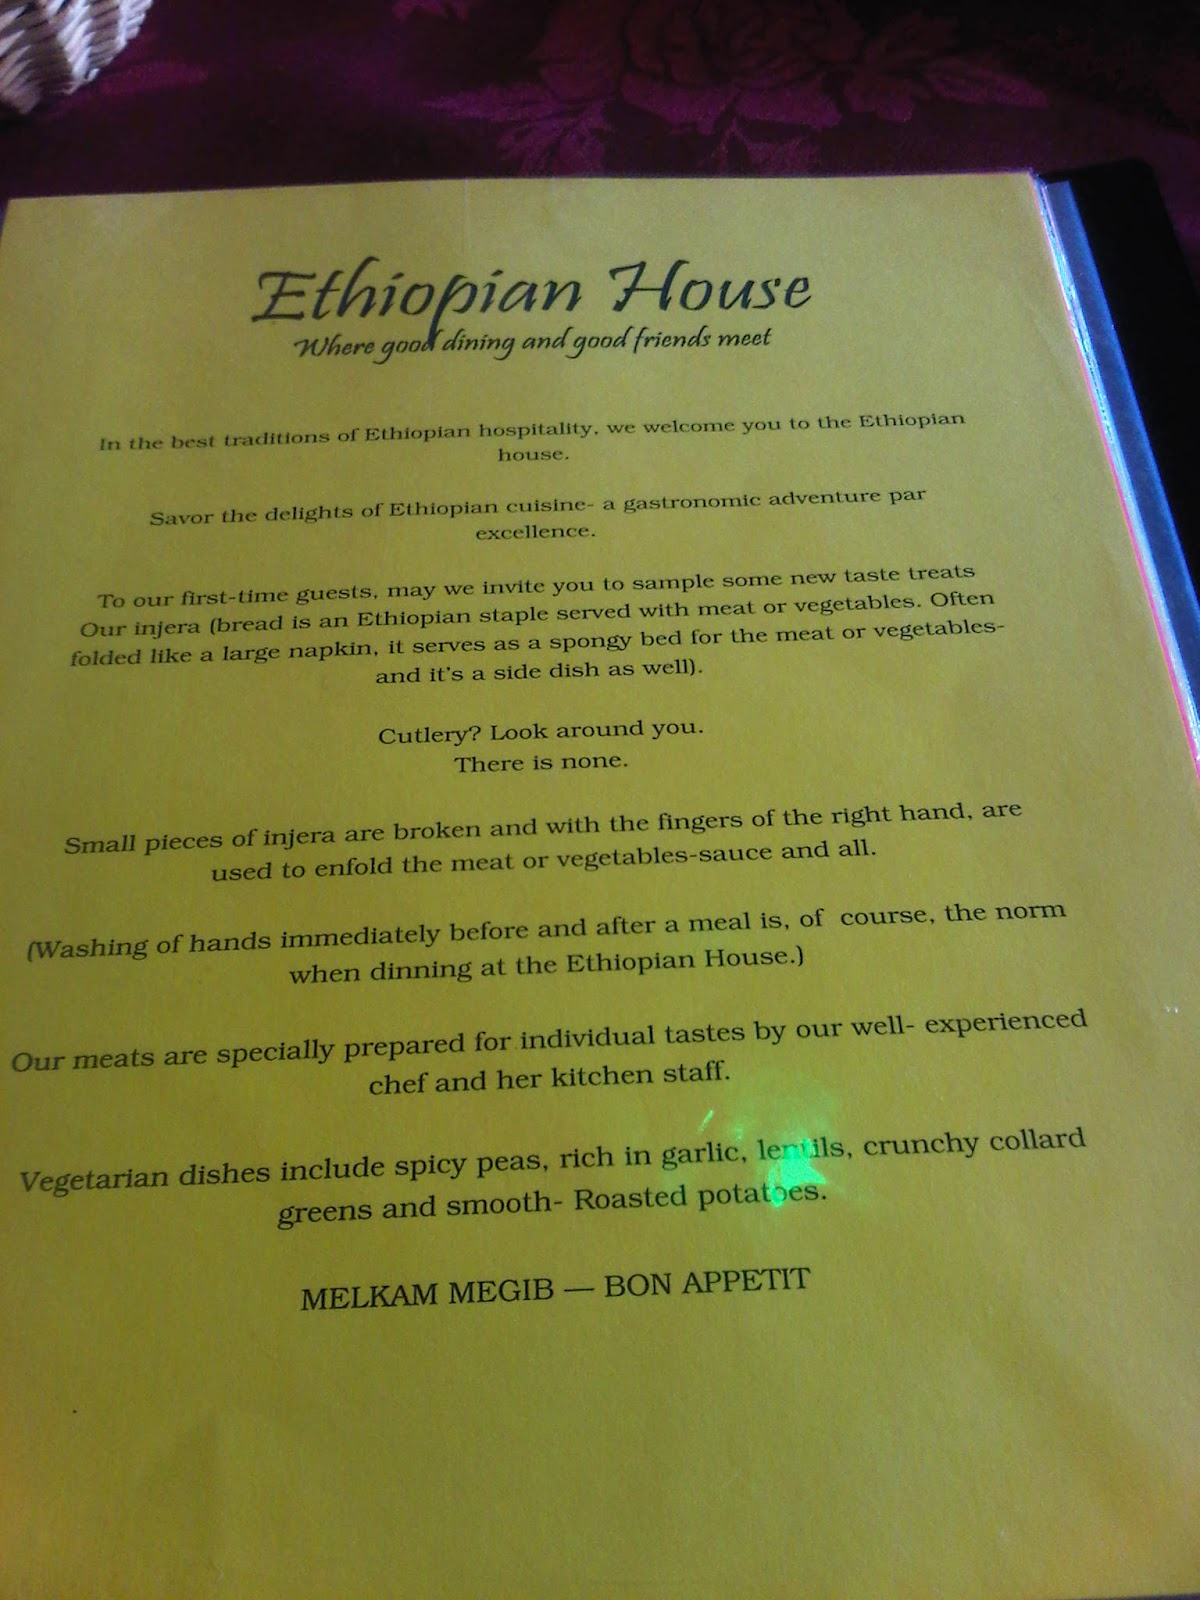 The Ethiopian House Refused To Give Us Cutlery And We Loved It